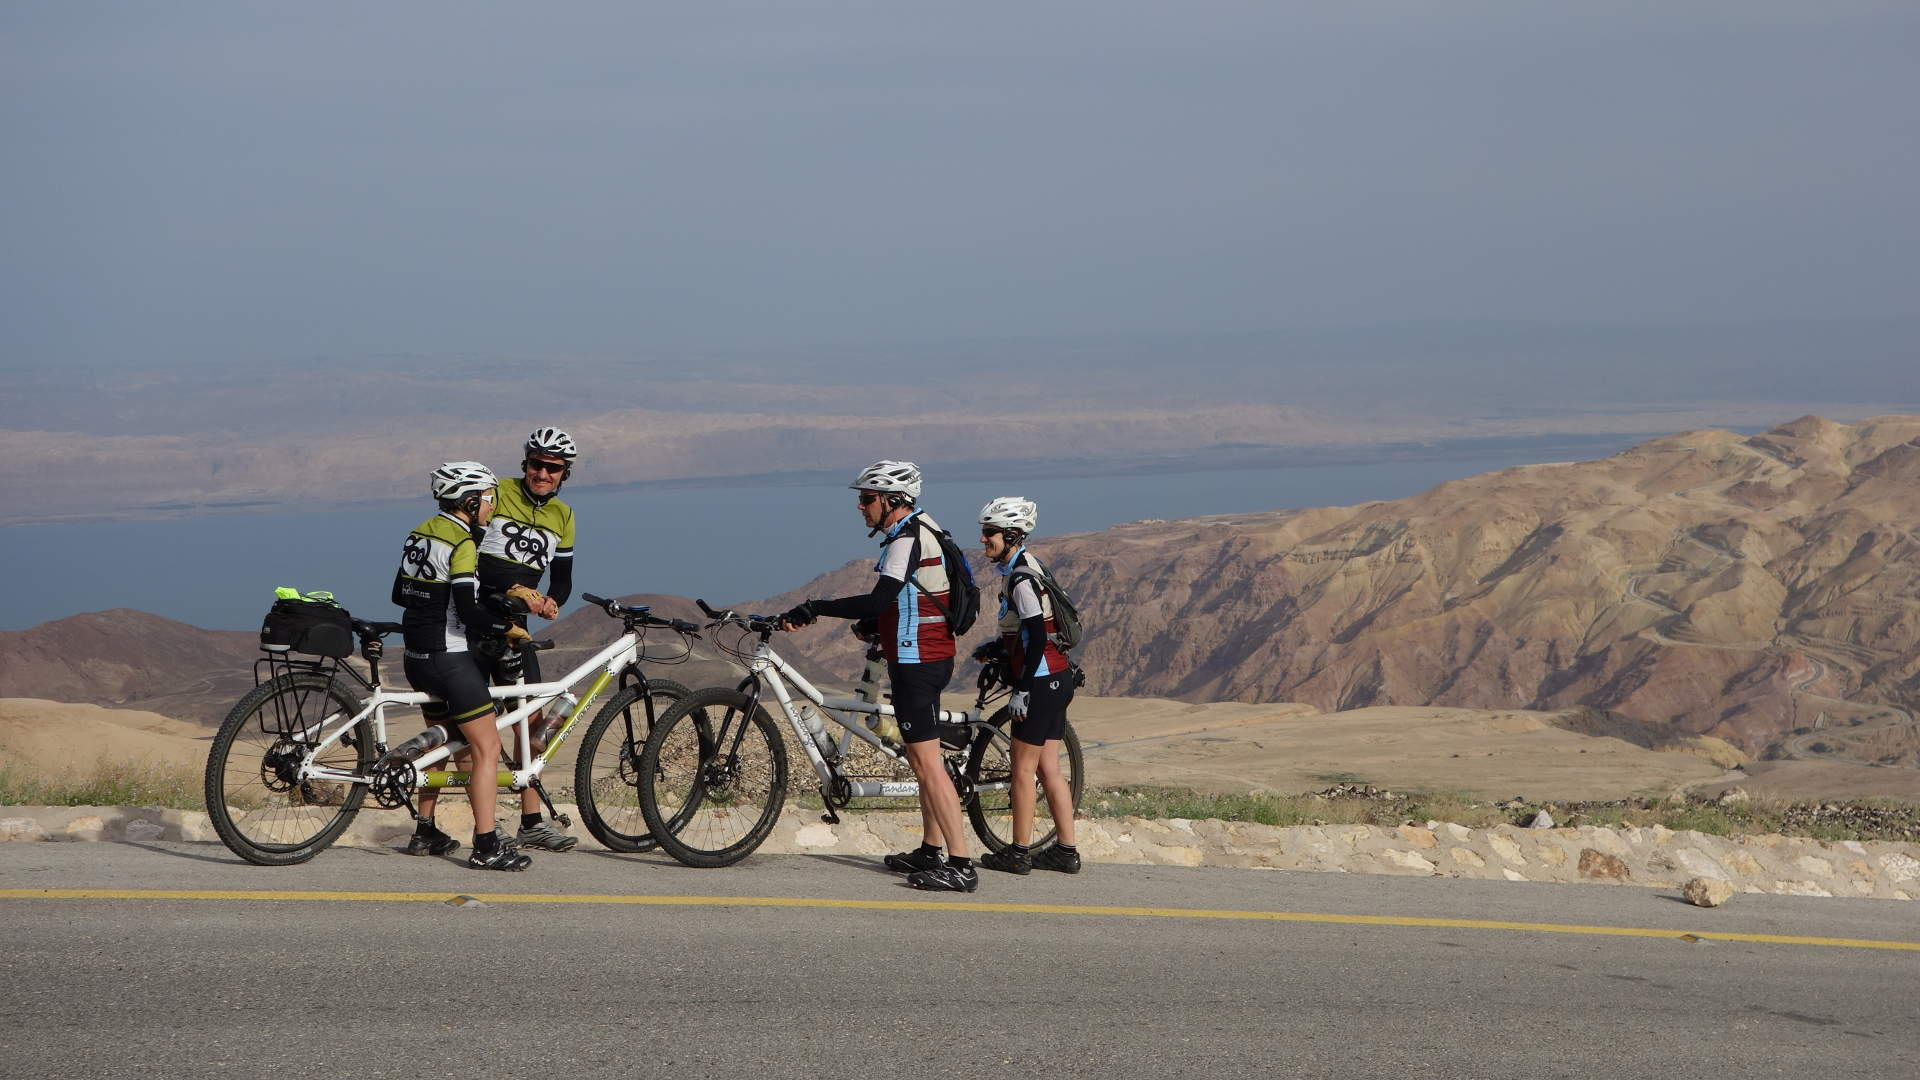 Bike Madaba to Mukawir